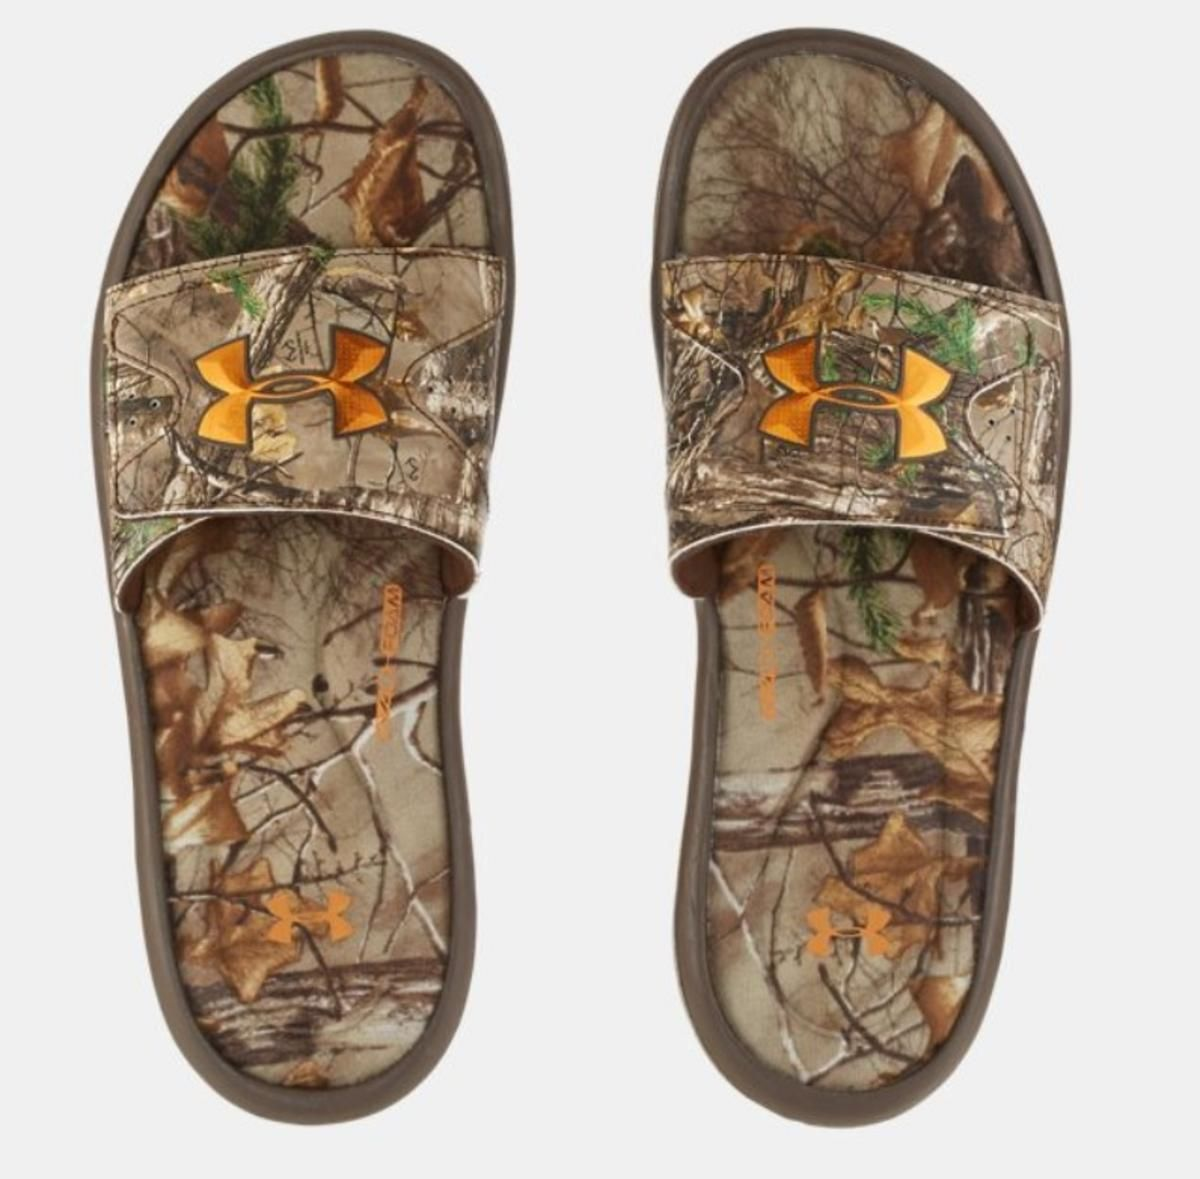 new product c0c3f 07bf2 Under Armour Men s UA Ignite Camo Slides - The Warming Store